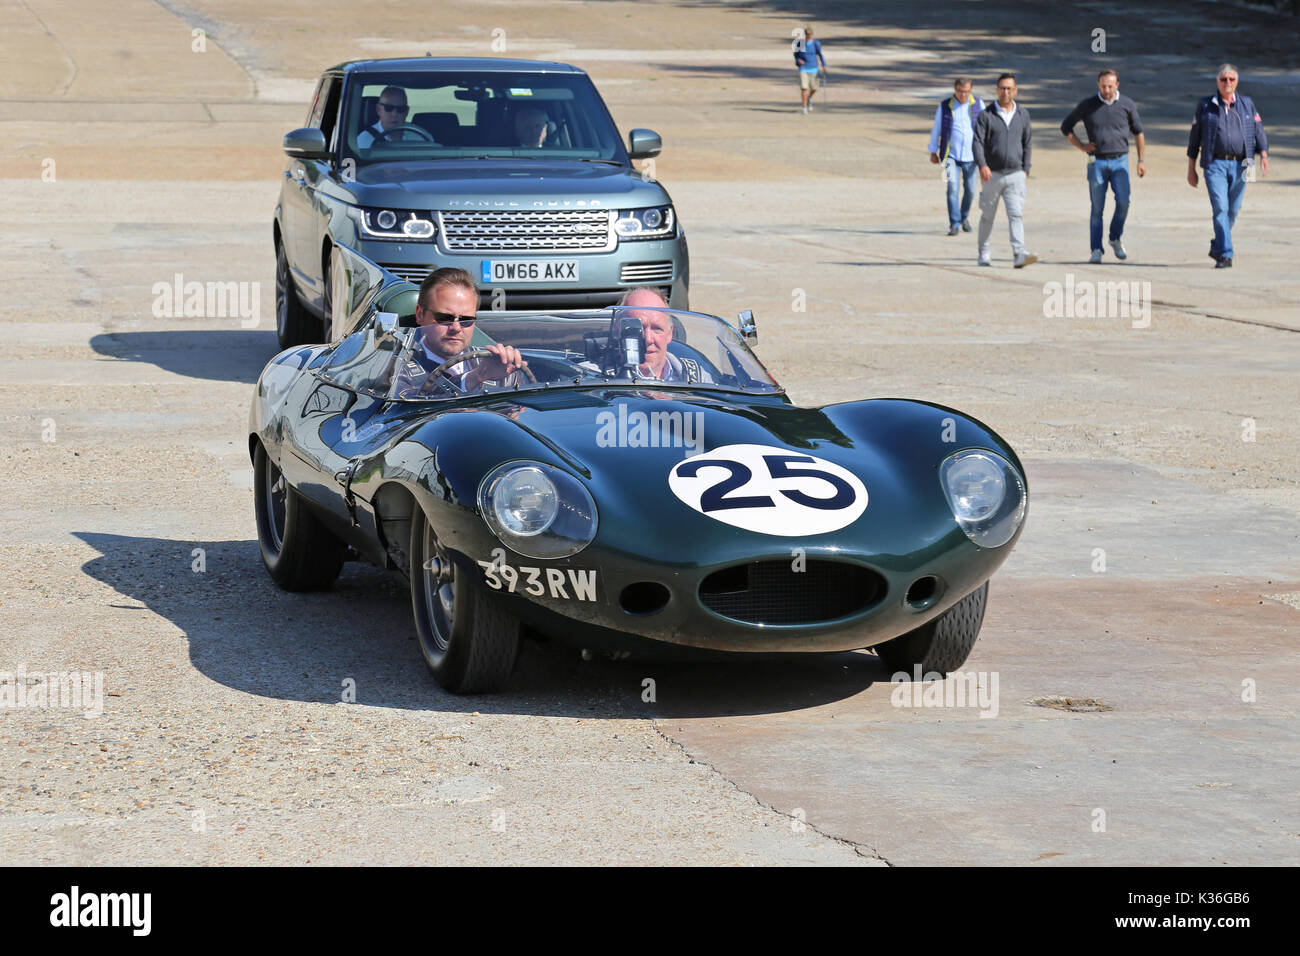 Five historic D-Type Jaguars visit Brooklands circuit, Weybridge, Surrey, England, UK. 1st September 2017. D-Type Jaguars won the Le Mans 24hr endurance race in 1955, 1956 and 1957. In 1957, D-Types were placed 1-2-3-4-6, with only a solitary Ferrari in 5th spoiling the parade. In picture, shown on Finishing Straight, car numbered '25' (Jaguar Works, XKD 605, 'long-nose') was 6th at Le Mans in 1956. - Stock Image